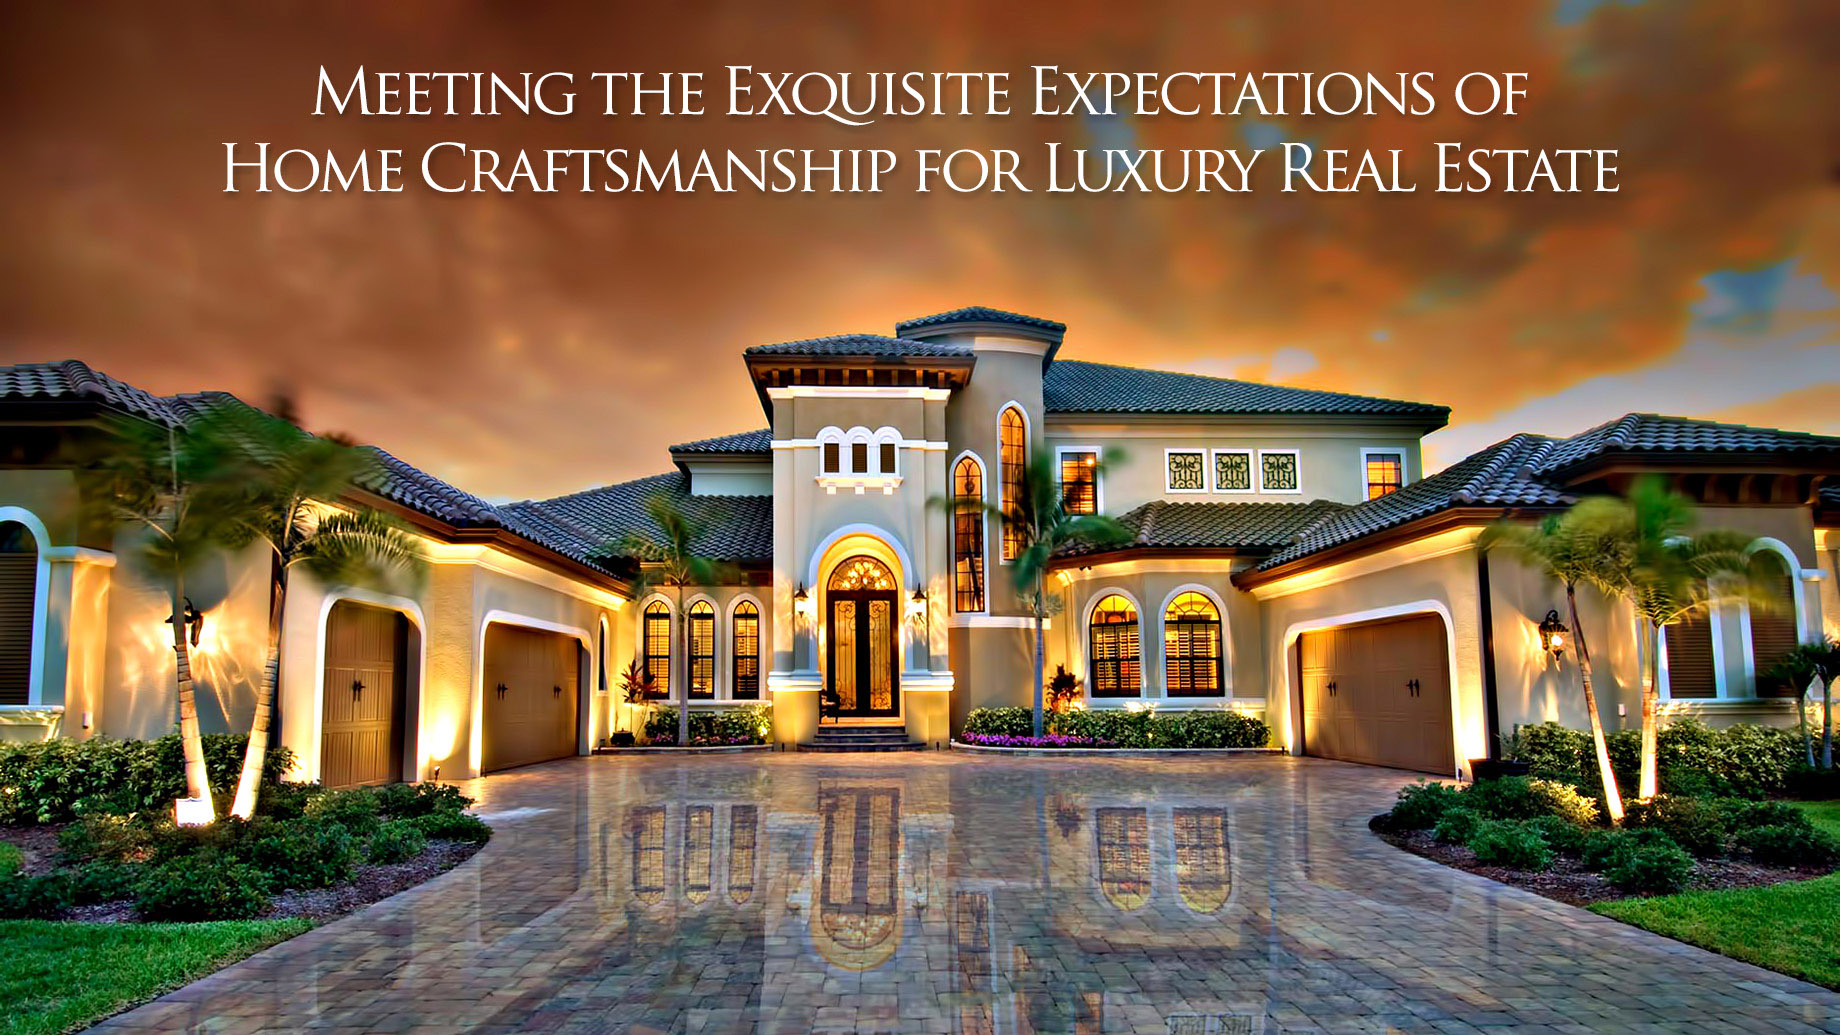 Meeting the Exquisite Expectations of Home Craftsmanship for Luxury Real Estate